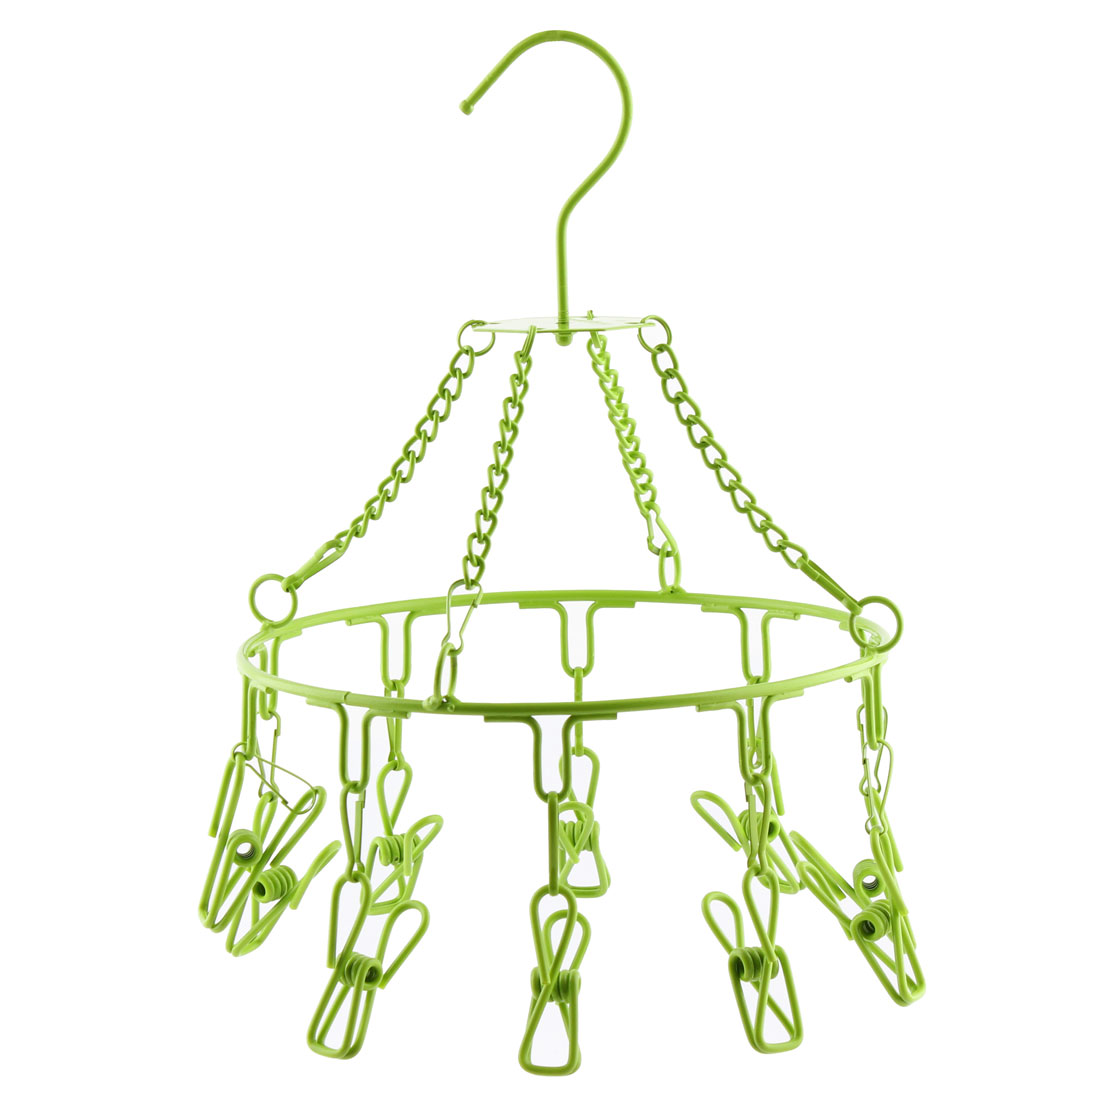 Home Plastic Coat Stainless Steel 10 Pegs Drying Rack Clothes Hanger Pale Green